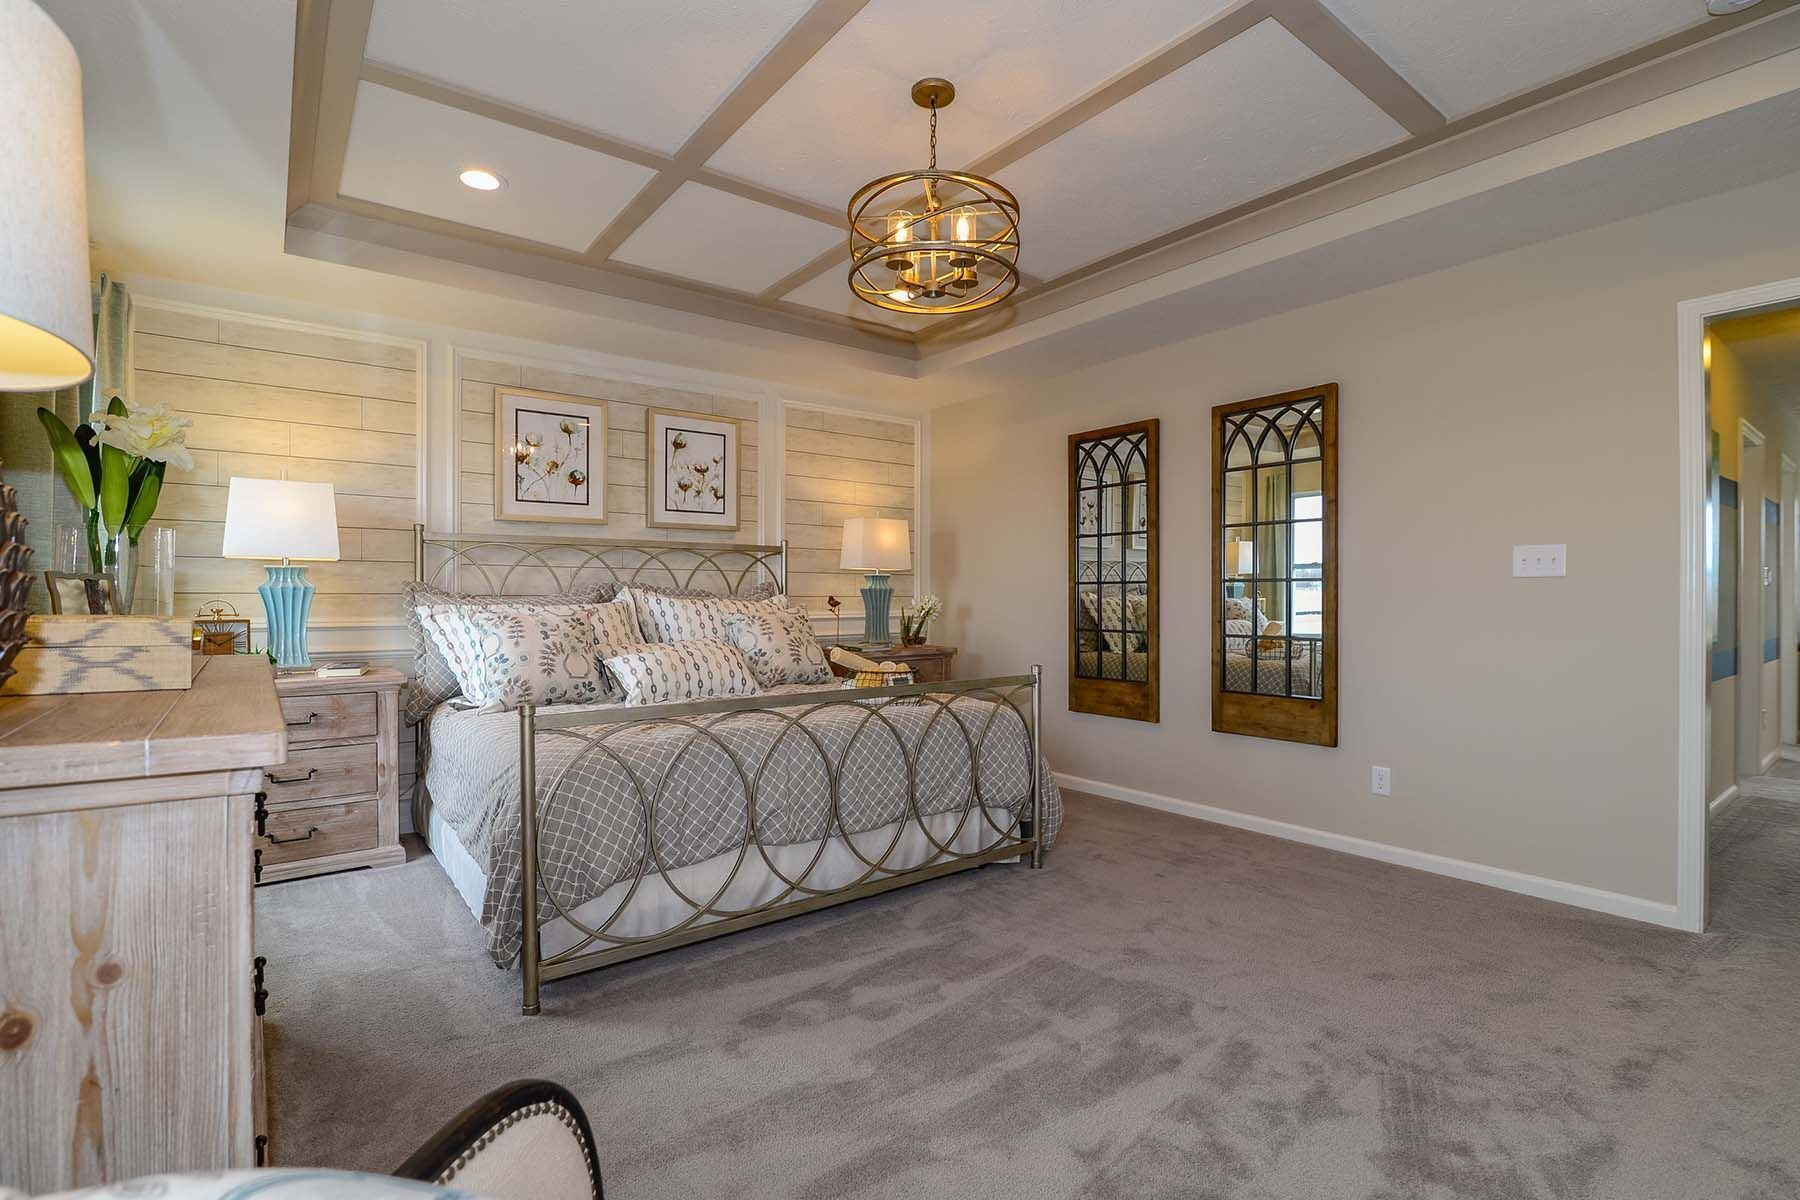 Bedroom featured in the Chauncey Slab By M/I Homes in Indianapolis, IN